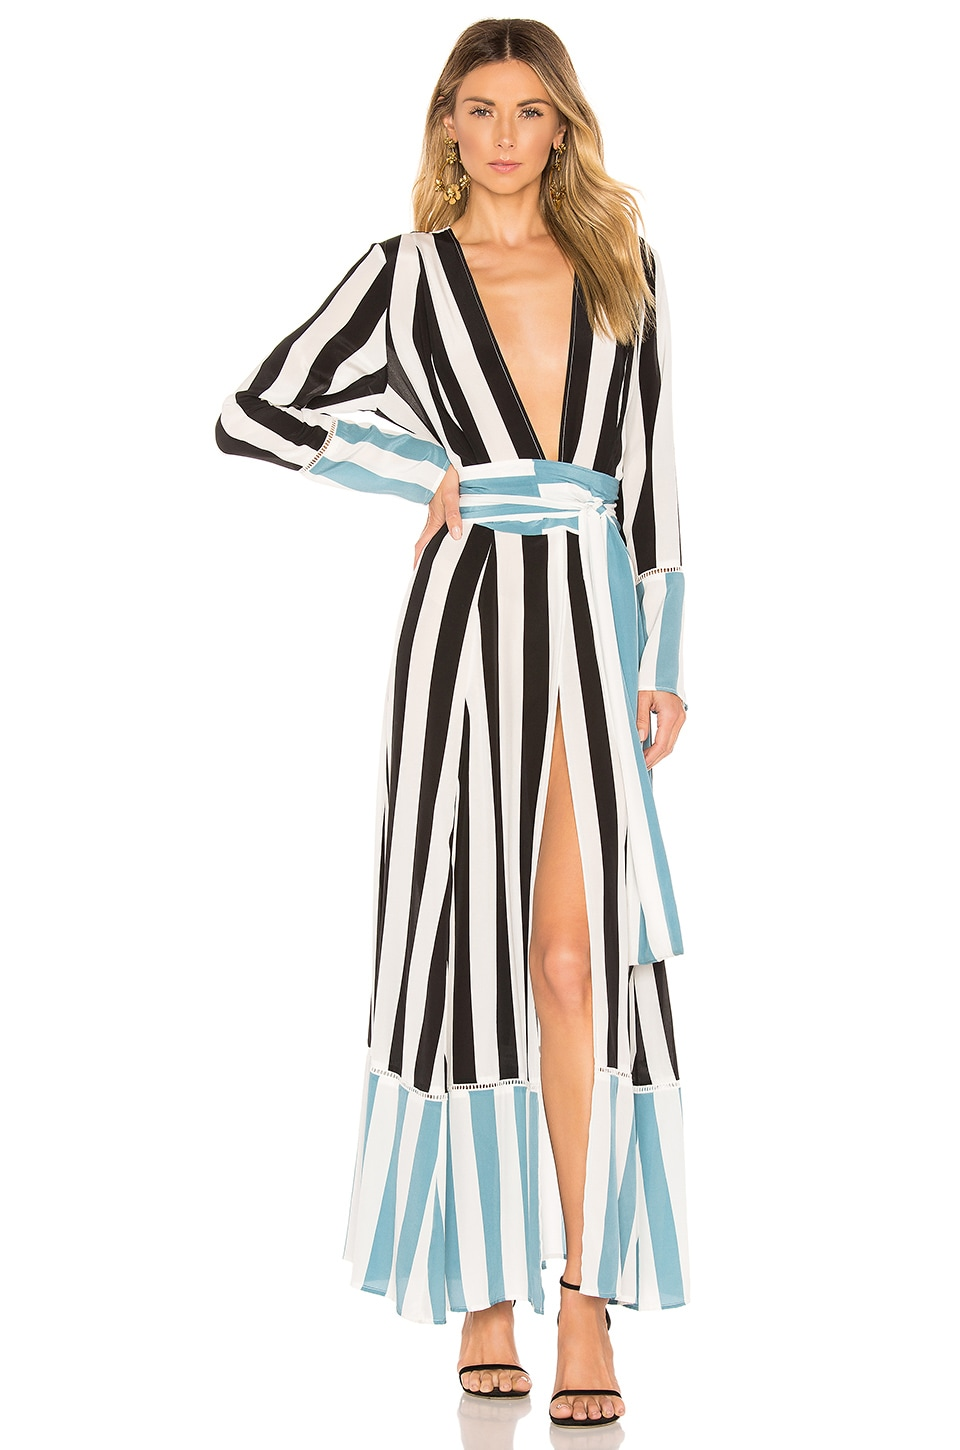 we are LEONE Contrast Maxi Cardigan Dress in Black Stripe with Powder Blue Stripes